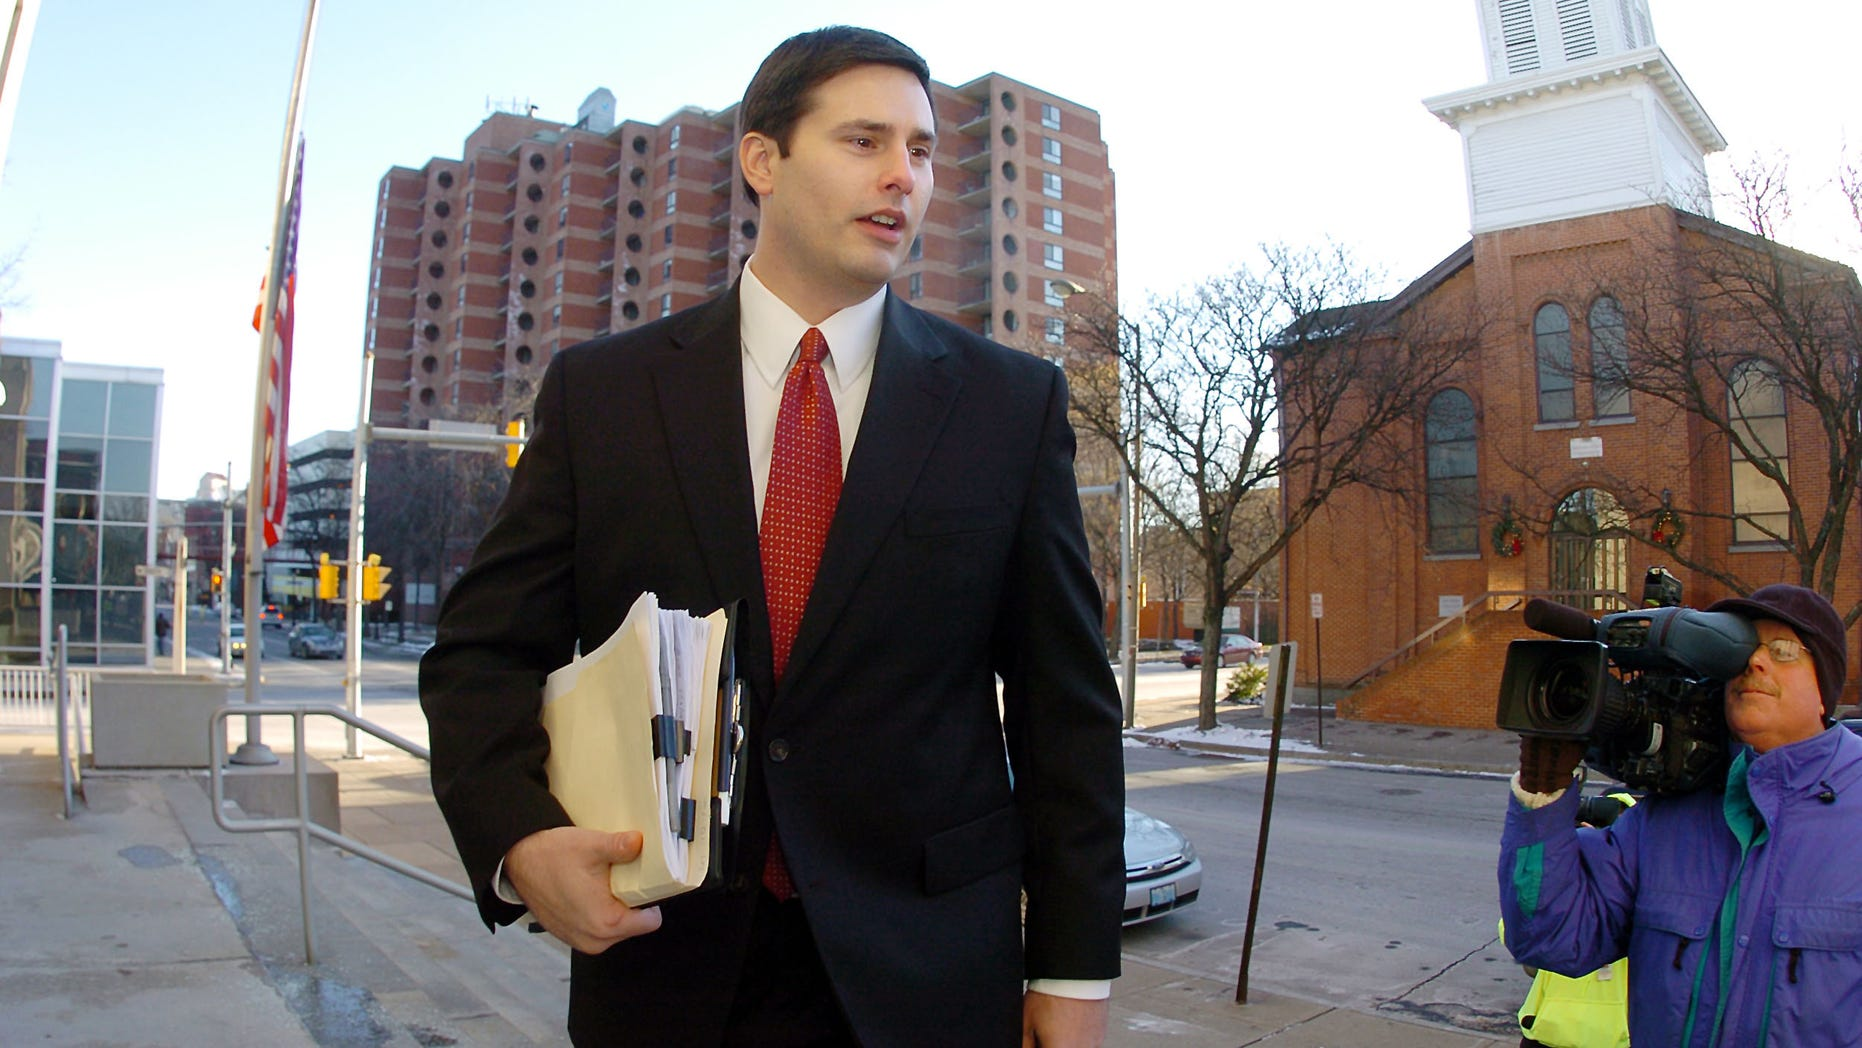 Former Shenandoah police Chief Matthew Nestor arrives at the Max Rosenn United States Courthouse in Wilkes-Barre, Pa.,  Monday, Jan. 10, 2011, for his trail on federal charges of conspiracy to obstruct justice. in the investigation into the fatal beating of an illegal immigrant from Mexico.     (AP Photo/The Citizens' Voice, Mark Moran) MANDATORY CREDIT